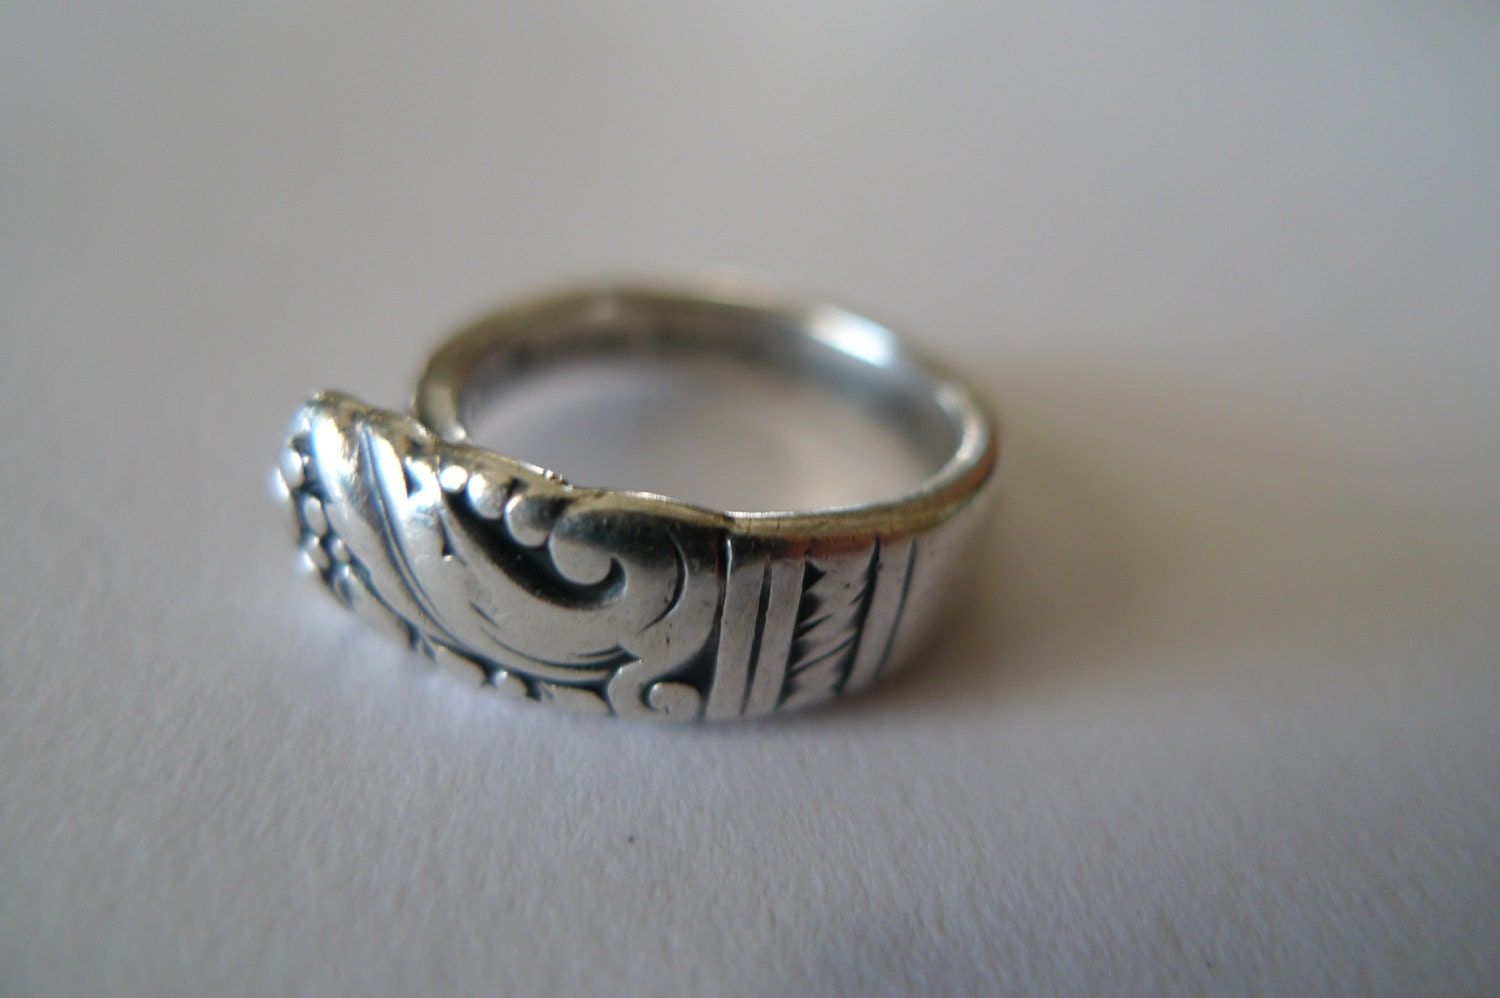 sterling silver spoon ring antique heirloom folk jewelry